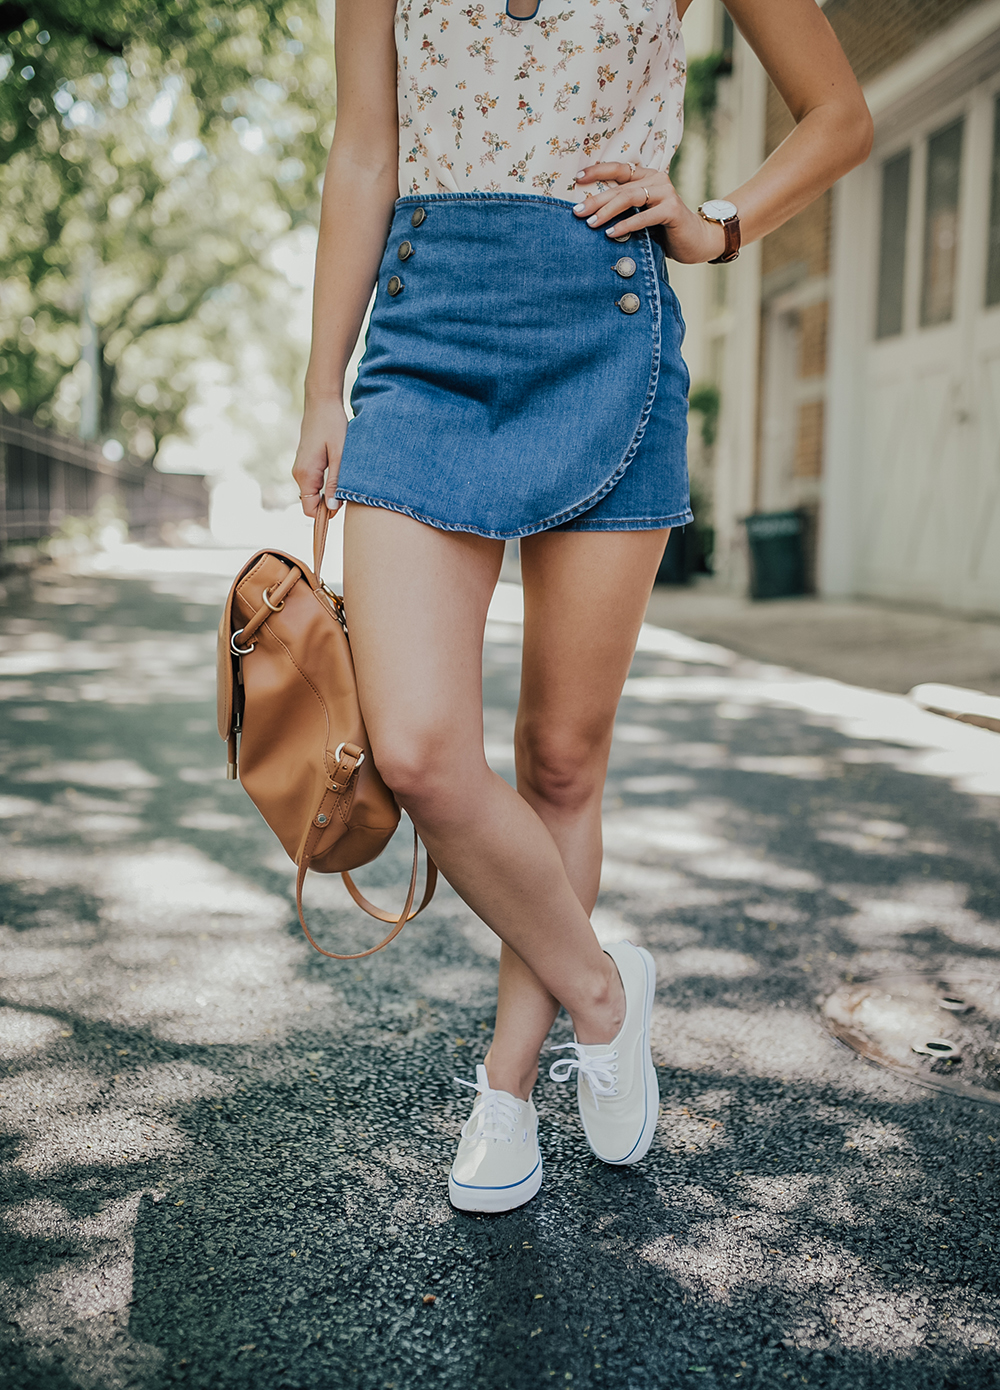 livvyland-blog-olivia-watson-new-york-city-cobble-hill-brooklyn-modcloth-skort-peter-pan-collar-top-vans-classic-sneakers-summer-outfit-7